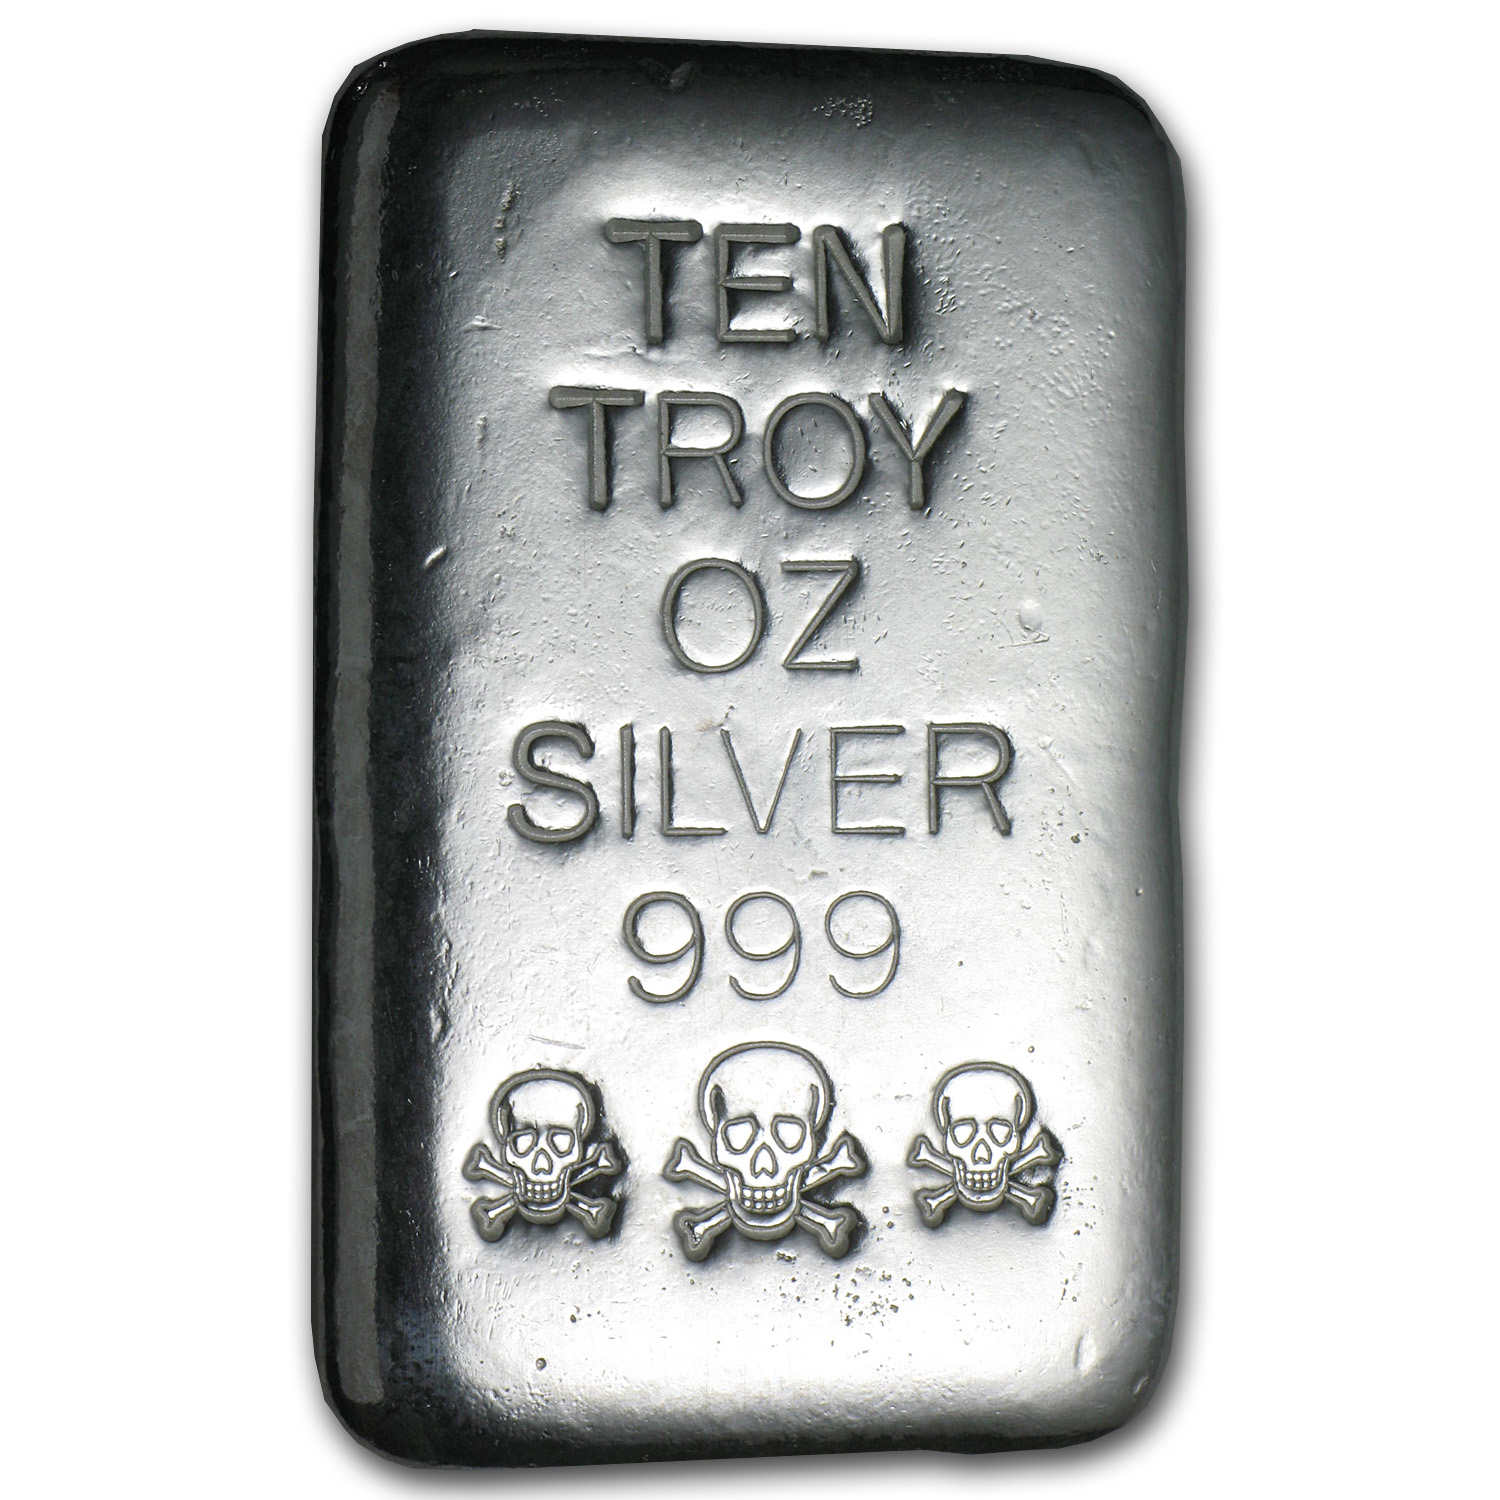 10 oz Silver Bar - Atlantis Mint (Skull & Bones)